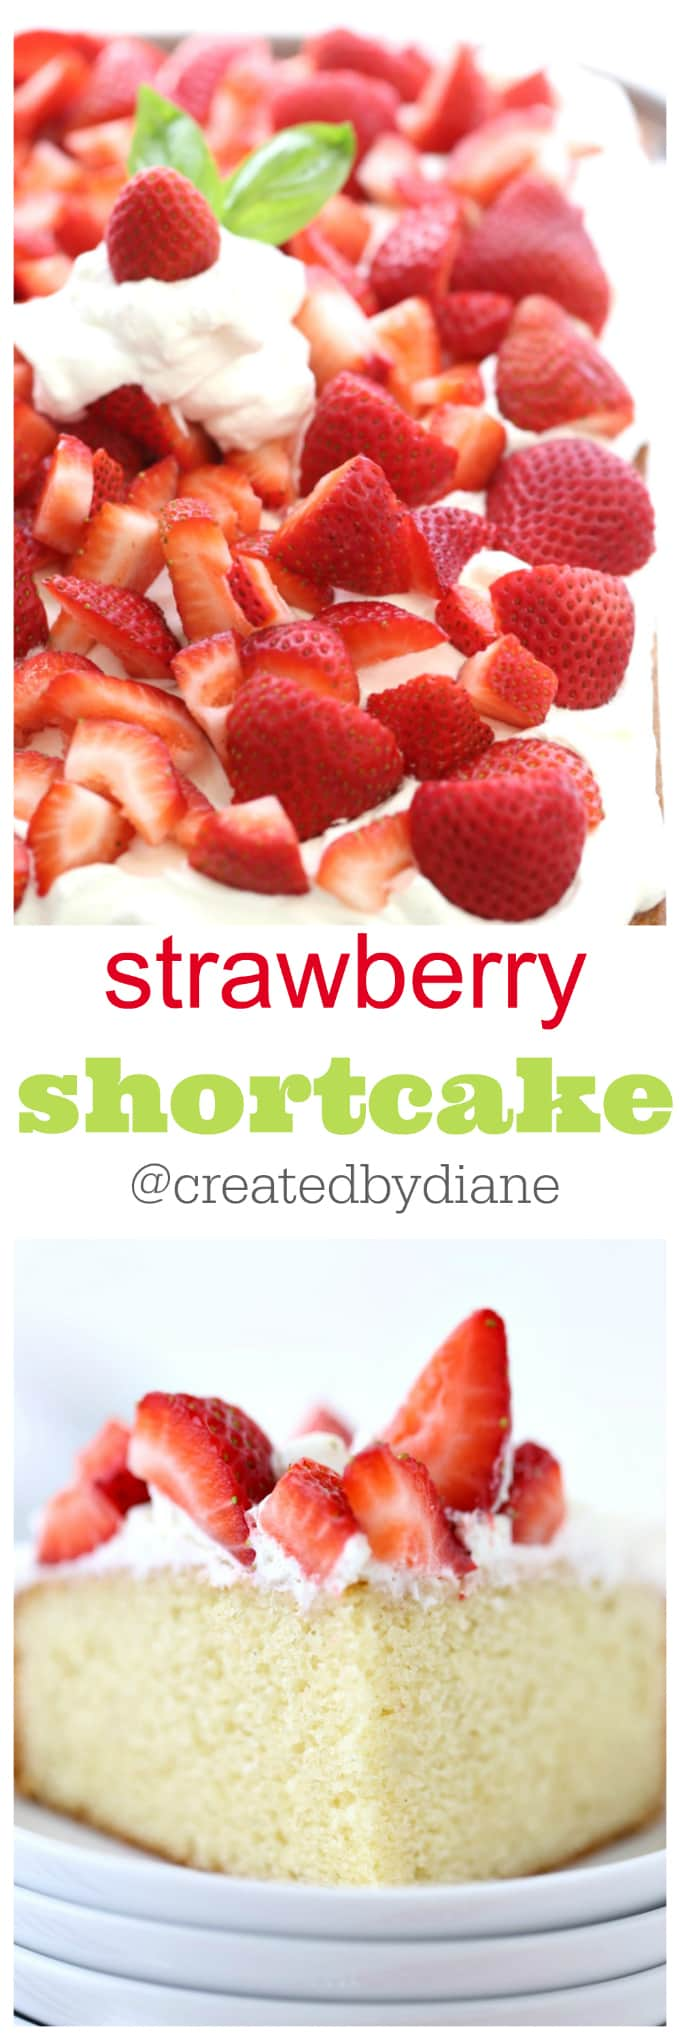 1 hour strawberry shortcake @createdbydiane